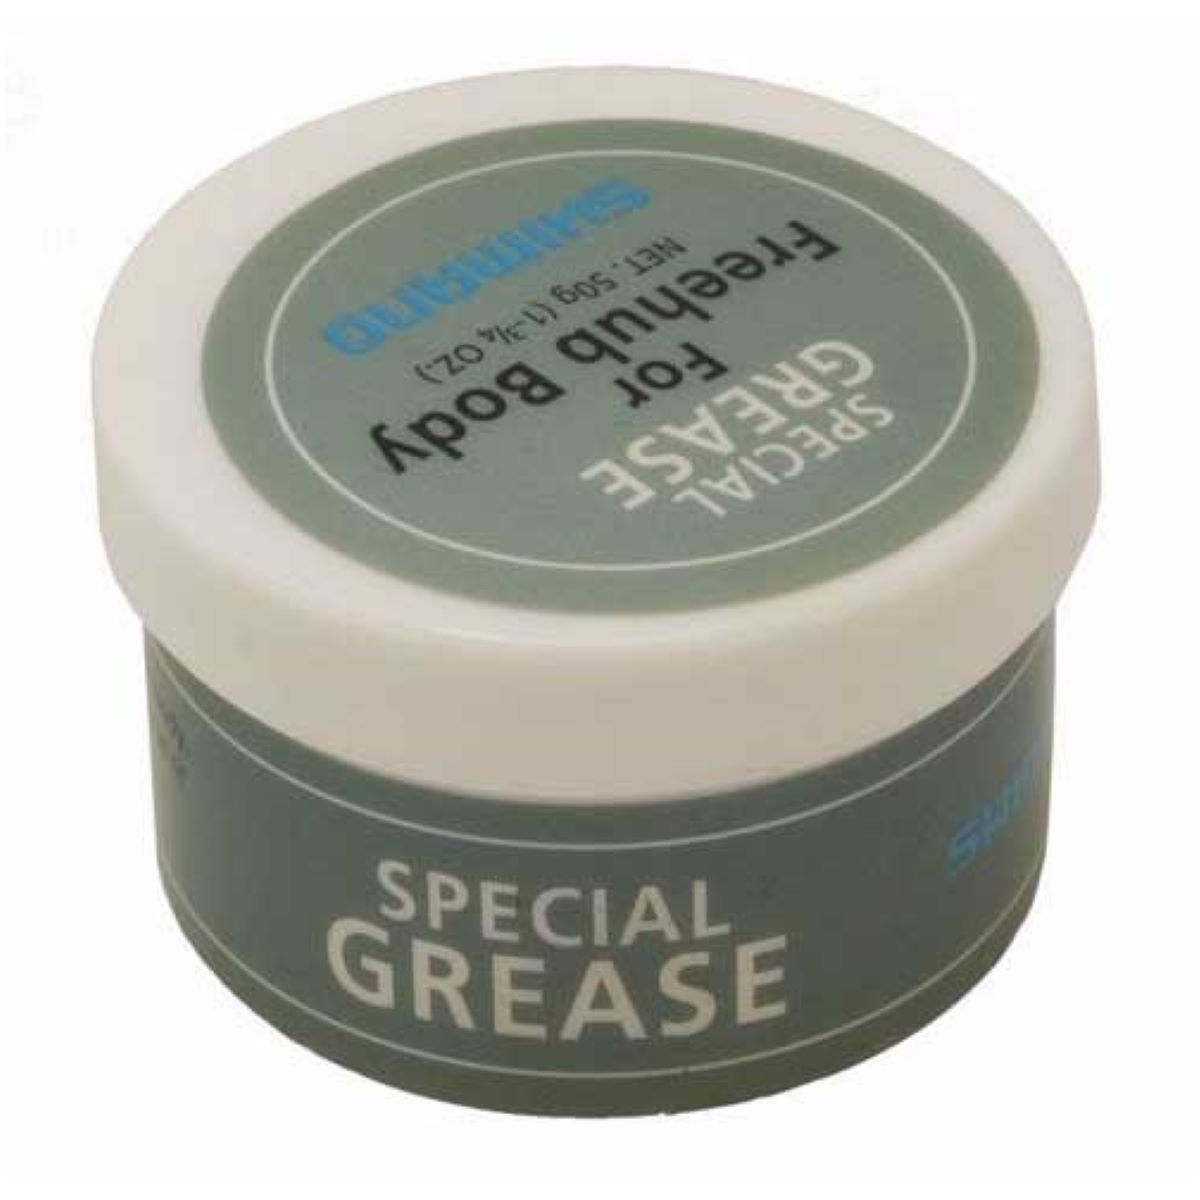 Shimano Special Grease - For Freehub Bodies - Grasas